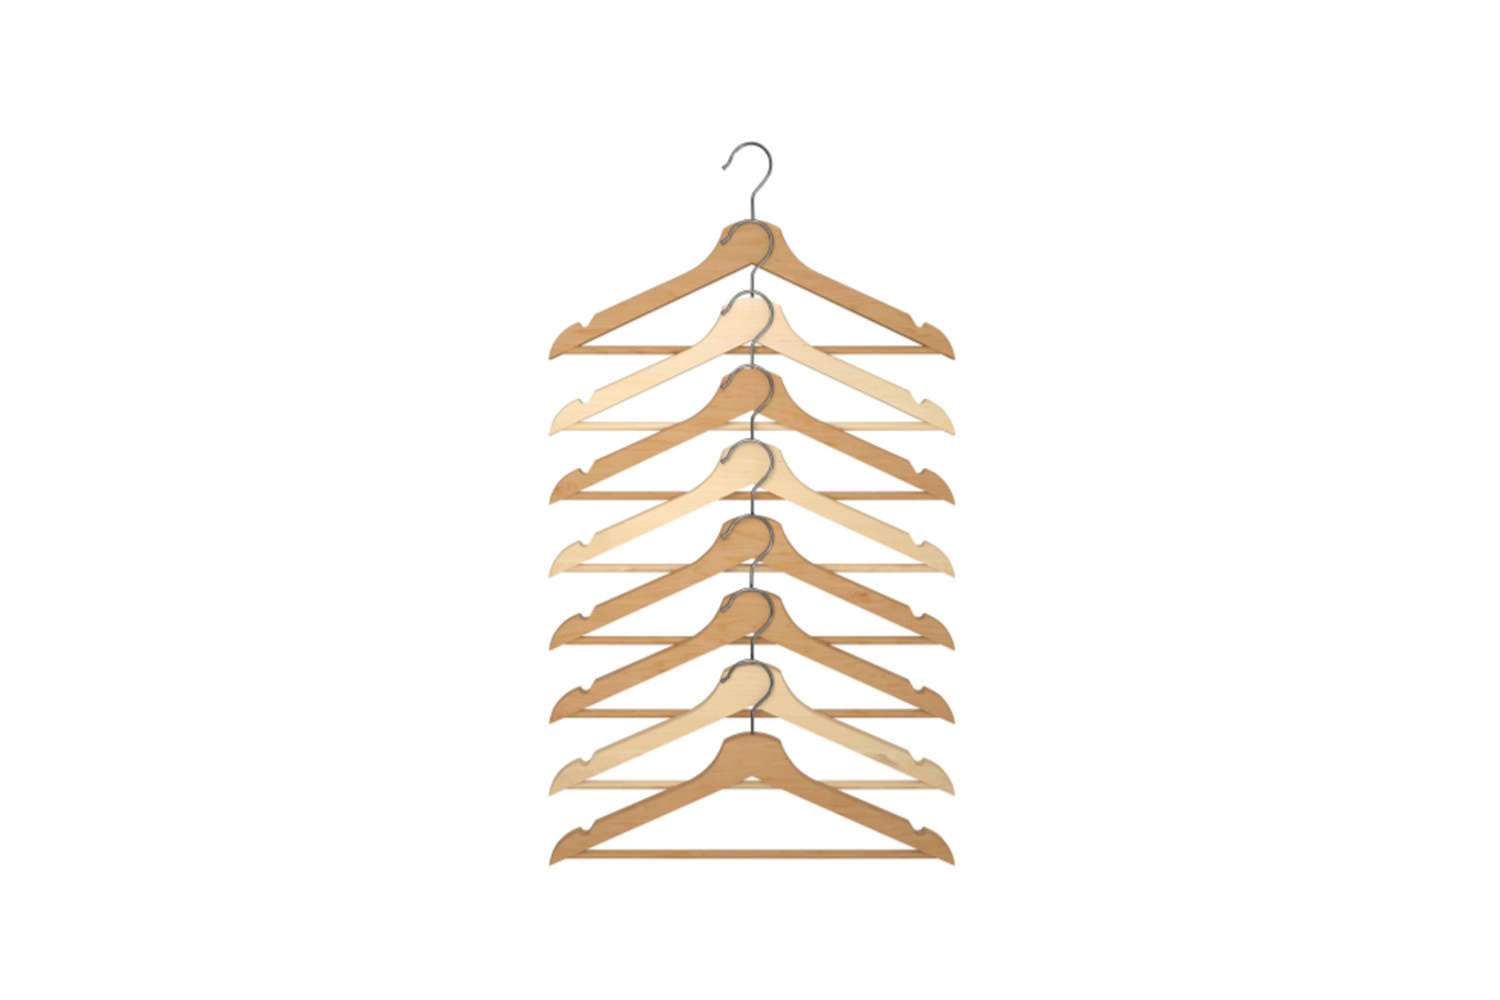 Get rid of all those flimsy wire hangers and upgrade to a uniform wooden set. An 8-pack of Bumerang Hangers is just $4.49.